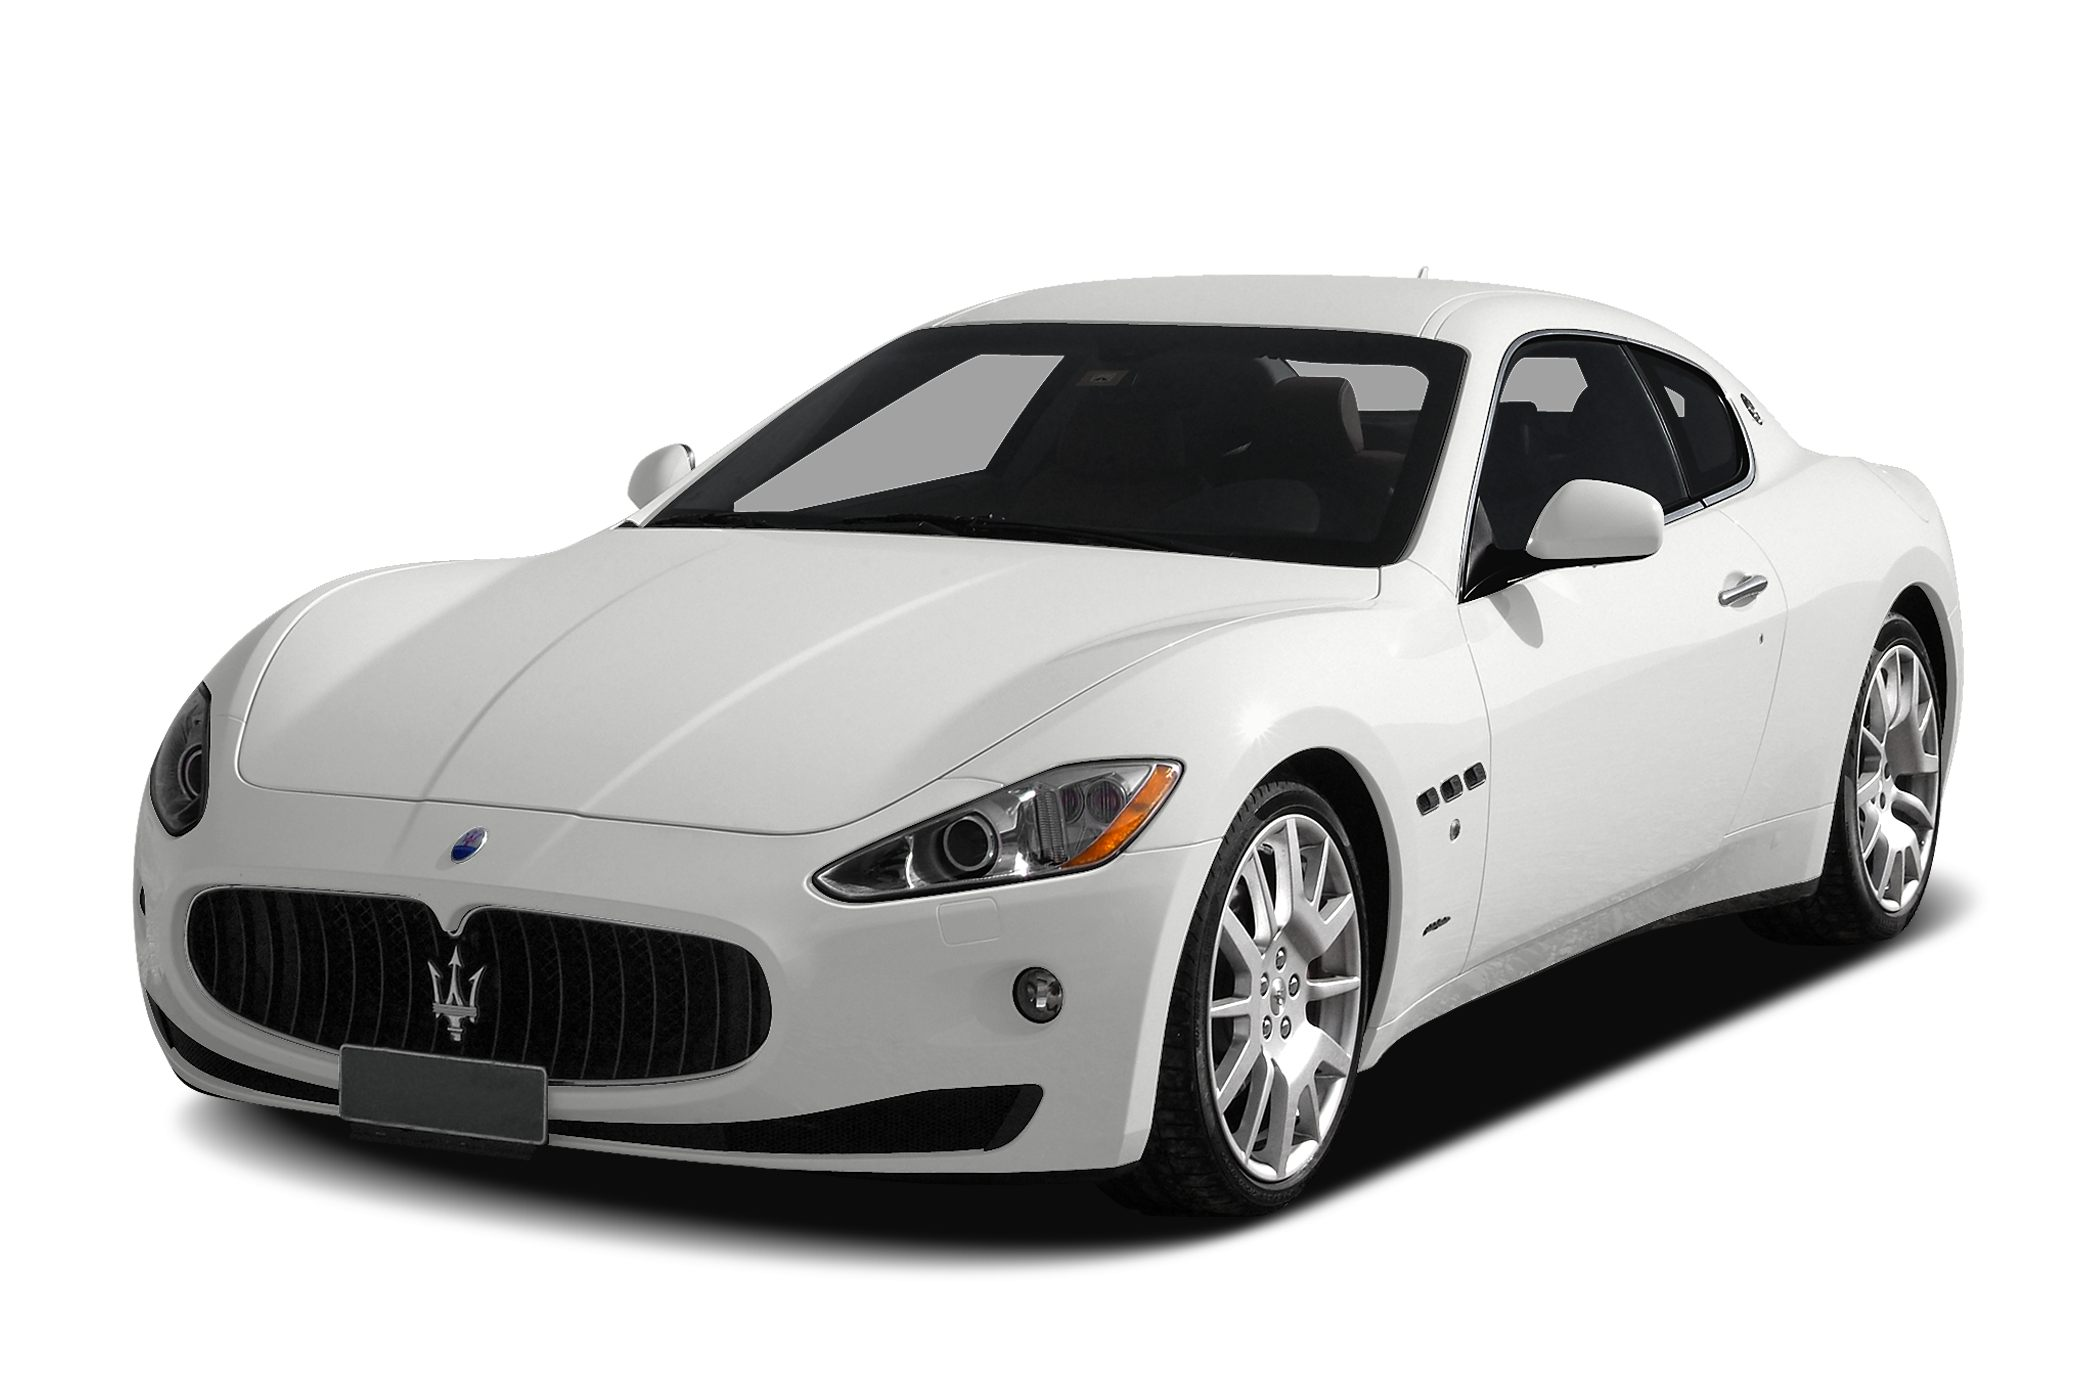 2008 Maserati GranTurismo